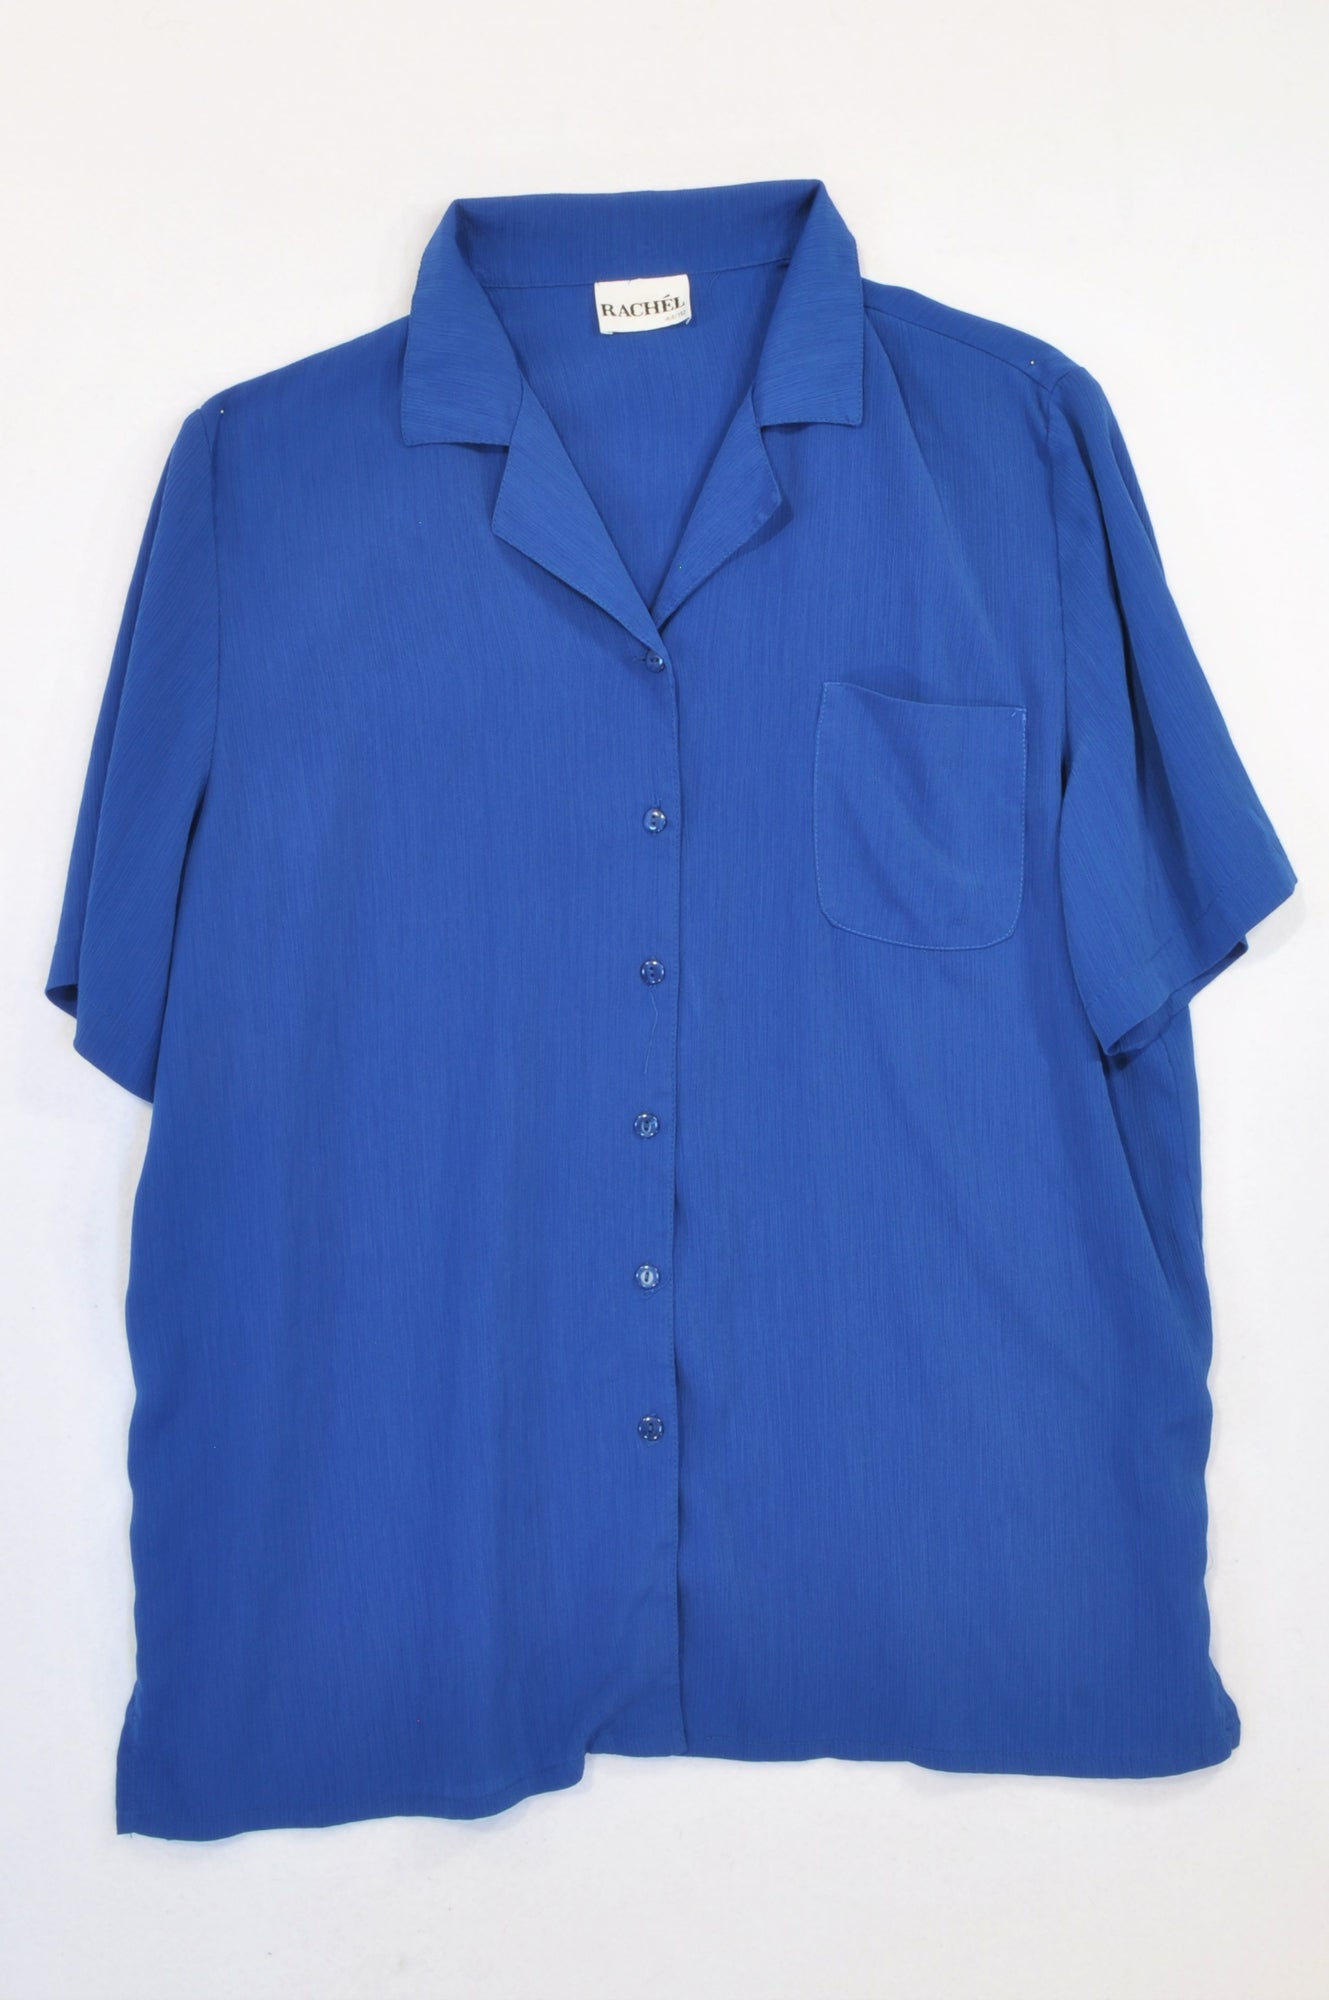 Rachél Royal Blue Crepe Button Blouse Women Size 44